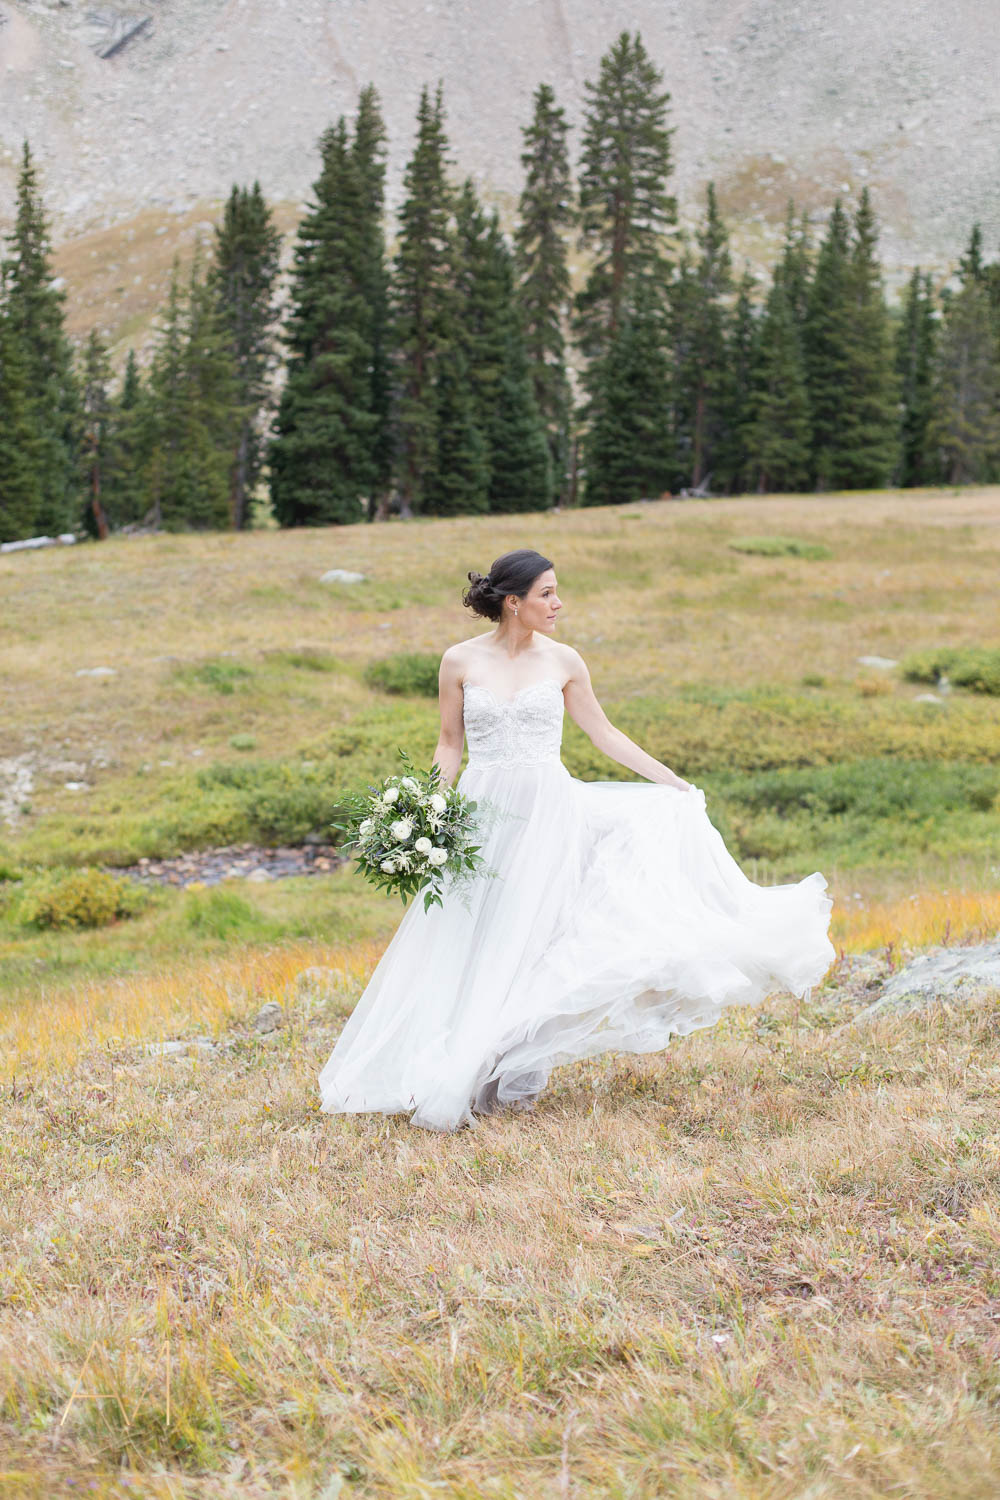 AshleighMillerWeddings-JennyAllen-ArapahoeBasin-Keystone-Colorado-2577.jpg